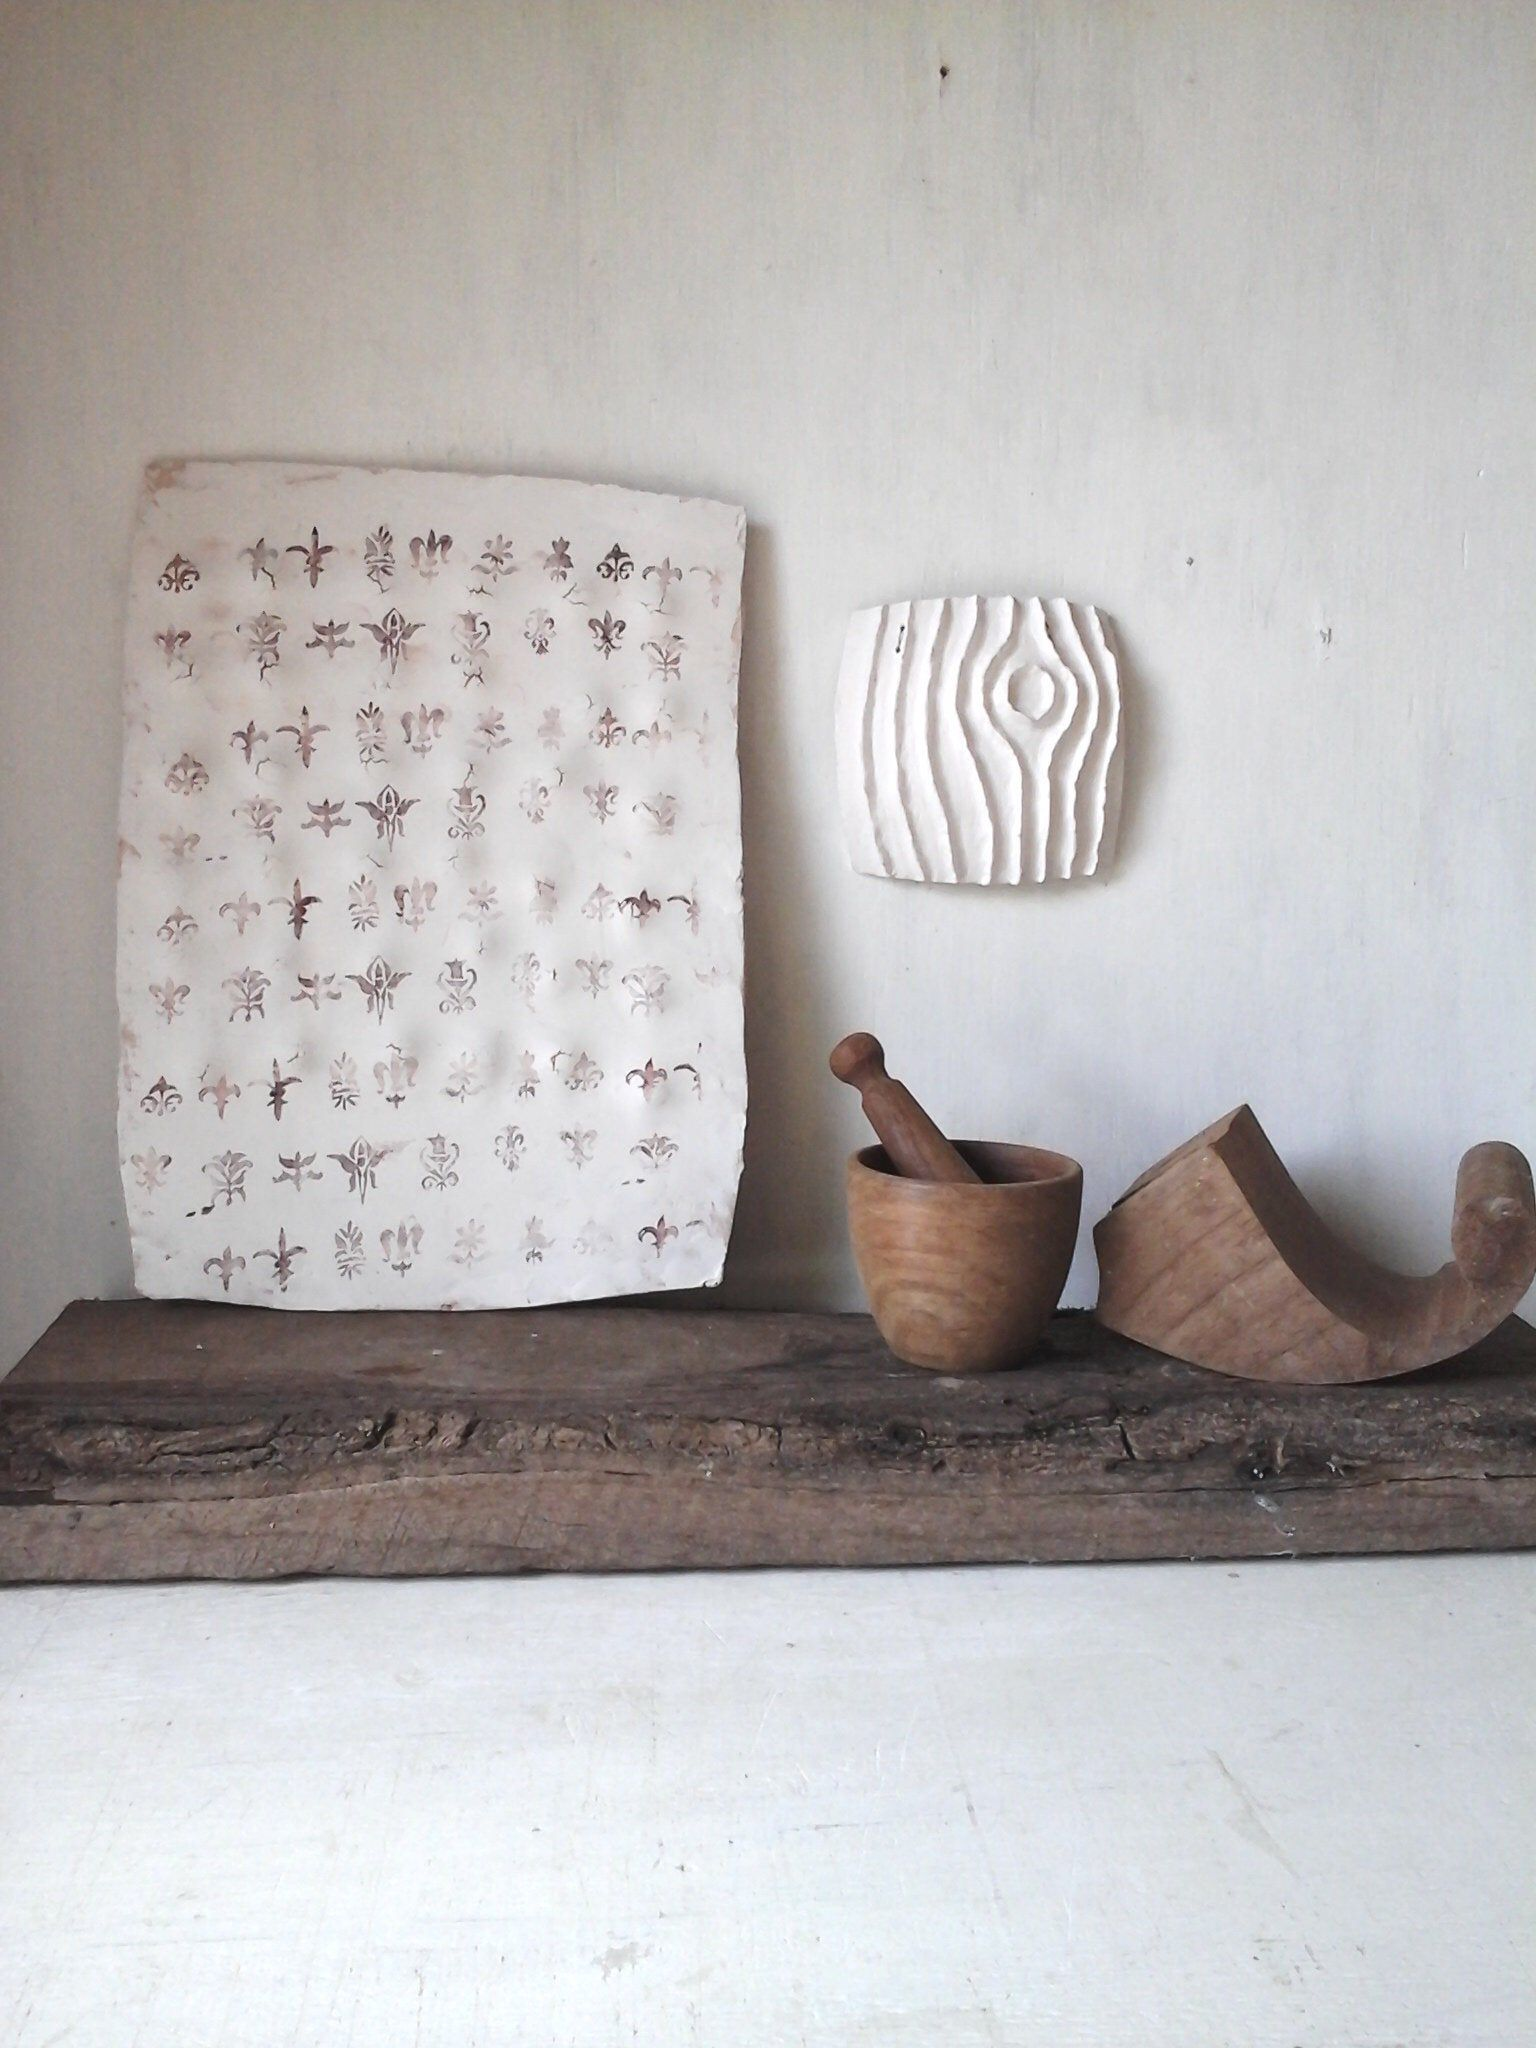 White hanging sculpture ceramic wall art with Florentine flèur-de-lis pattern, rustic Italian decor from Louise Fulton Studio